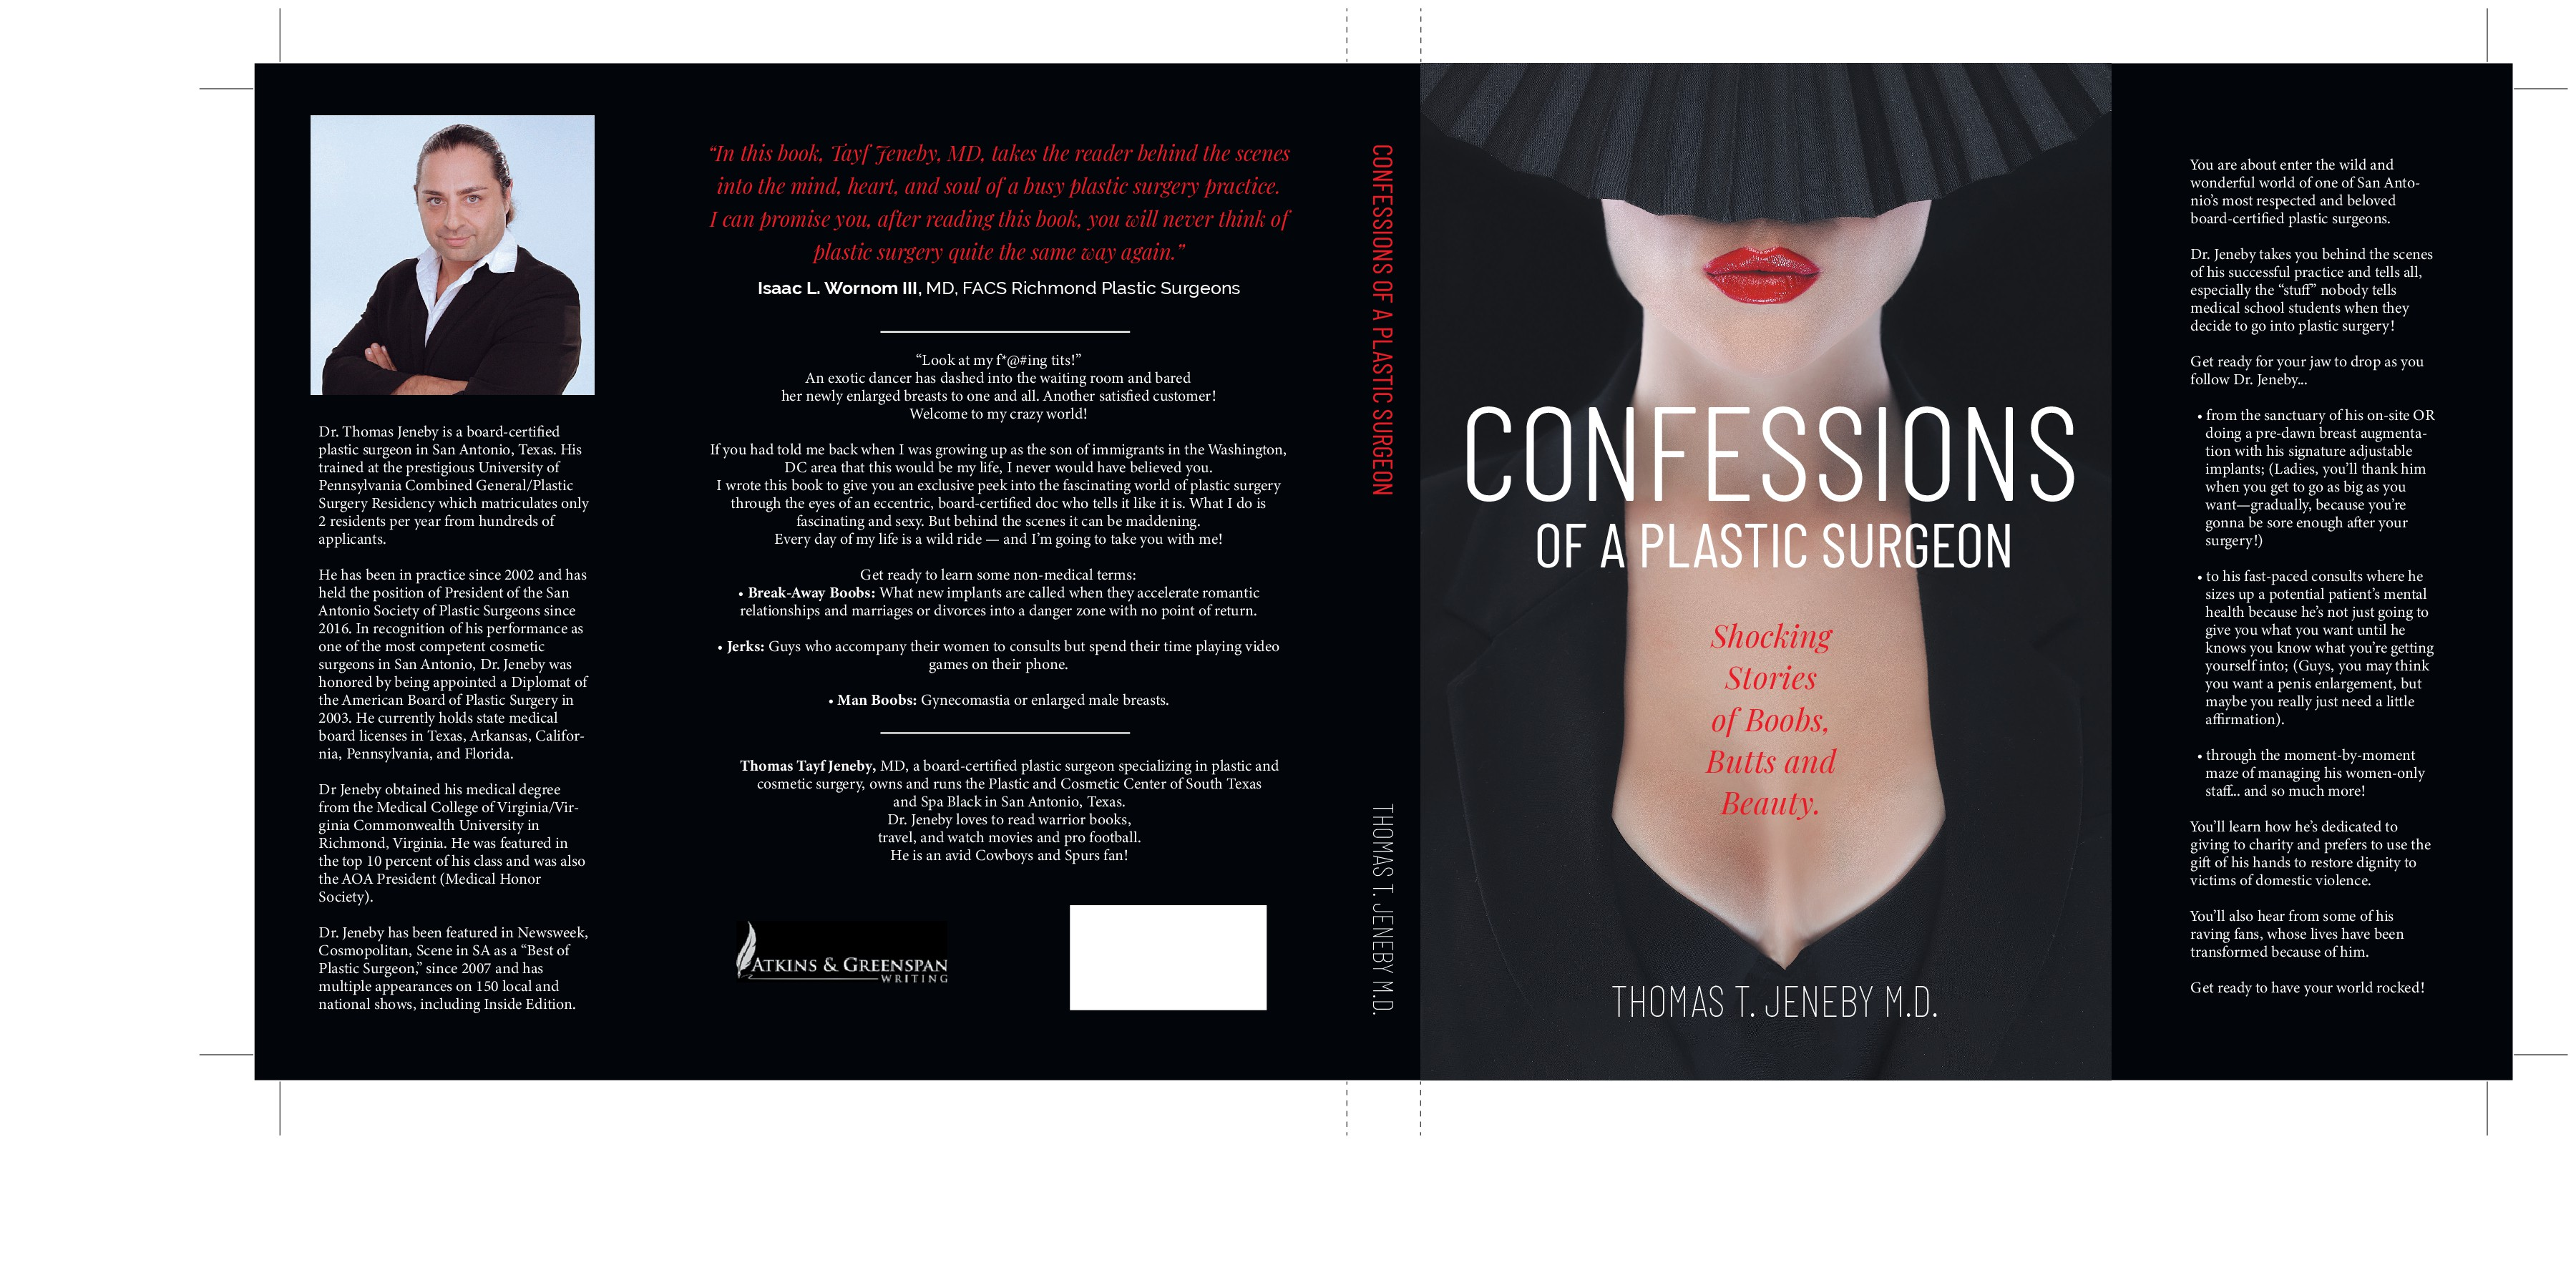 The front cover shpuld convey a sexy summer read to those who want to learn more Plastic Surgery